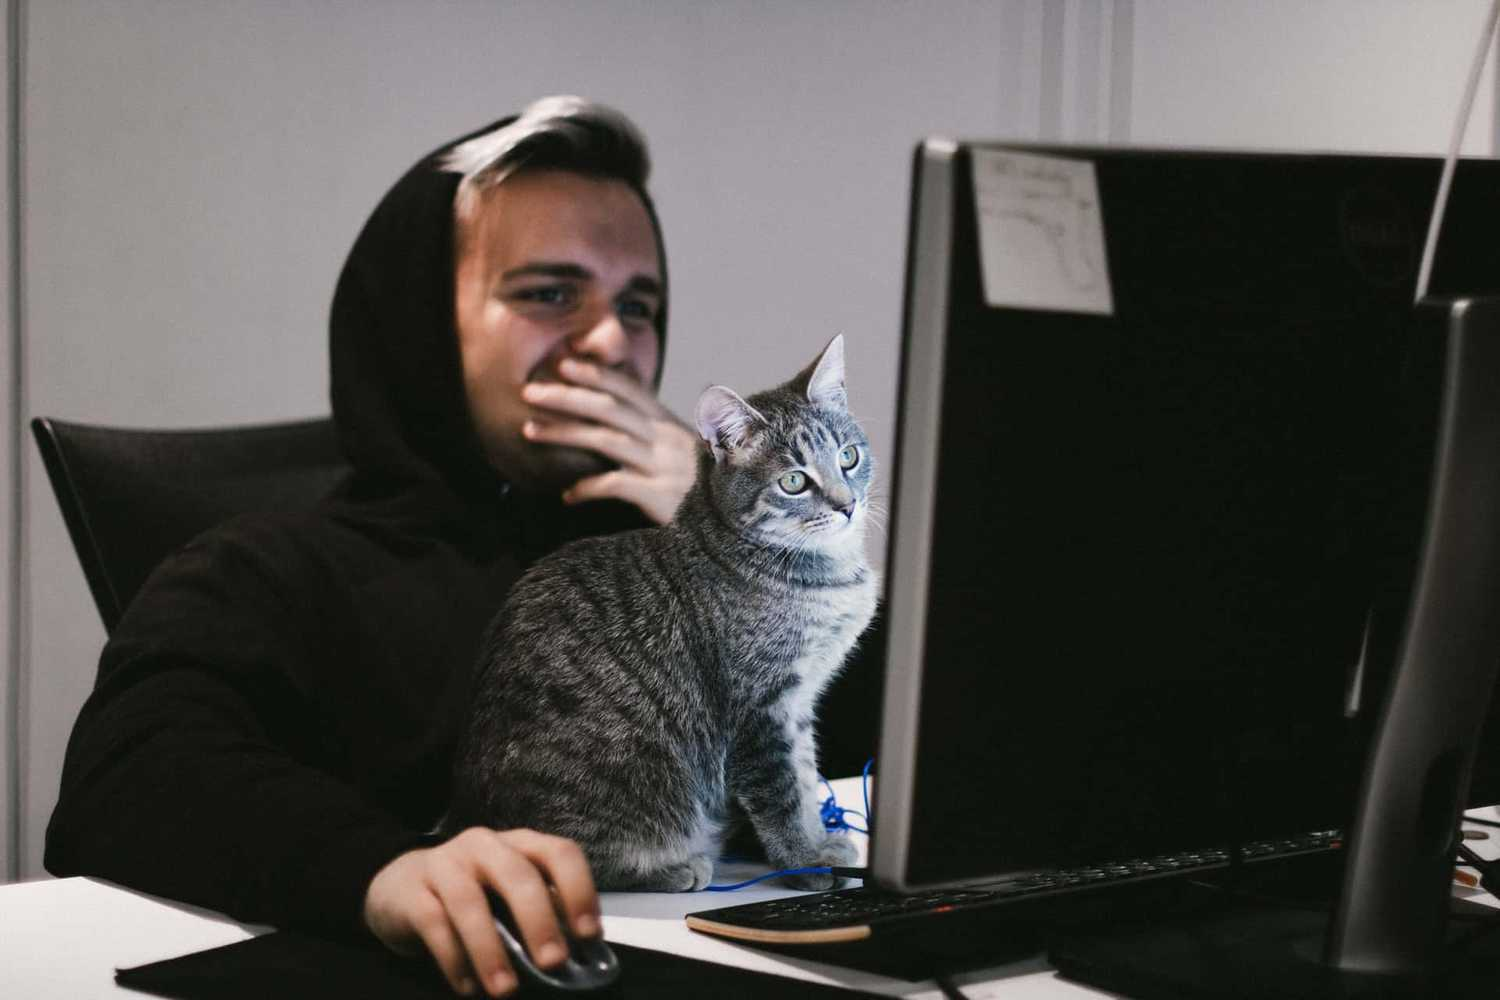 Person with cat sitting on top of desk at computer